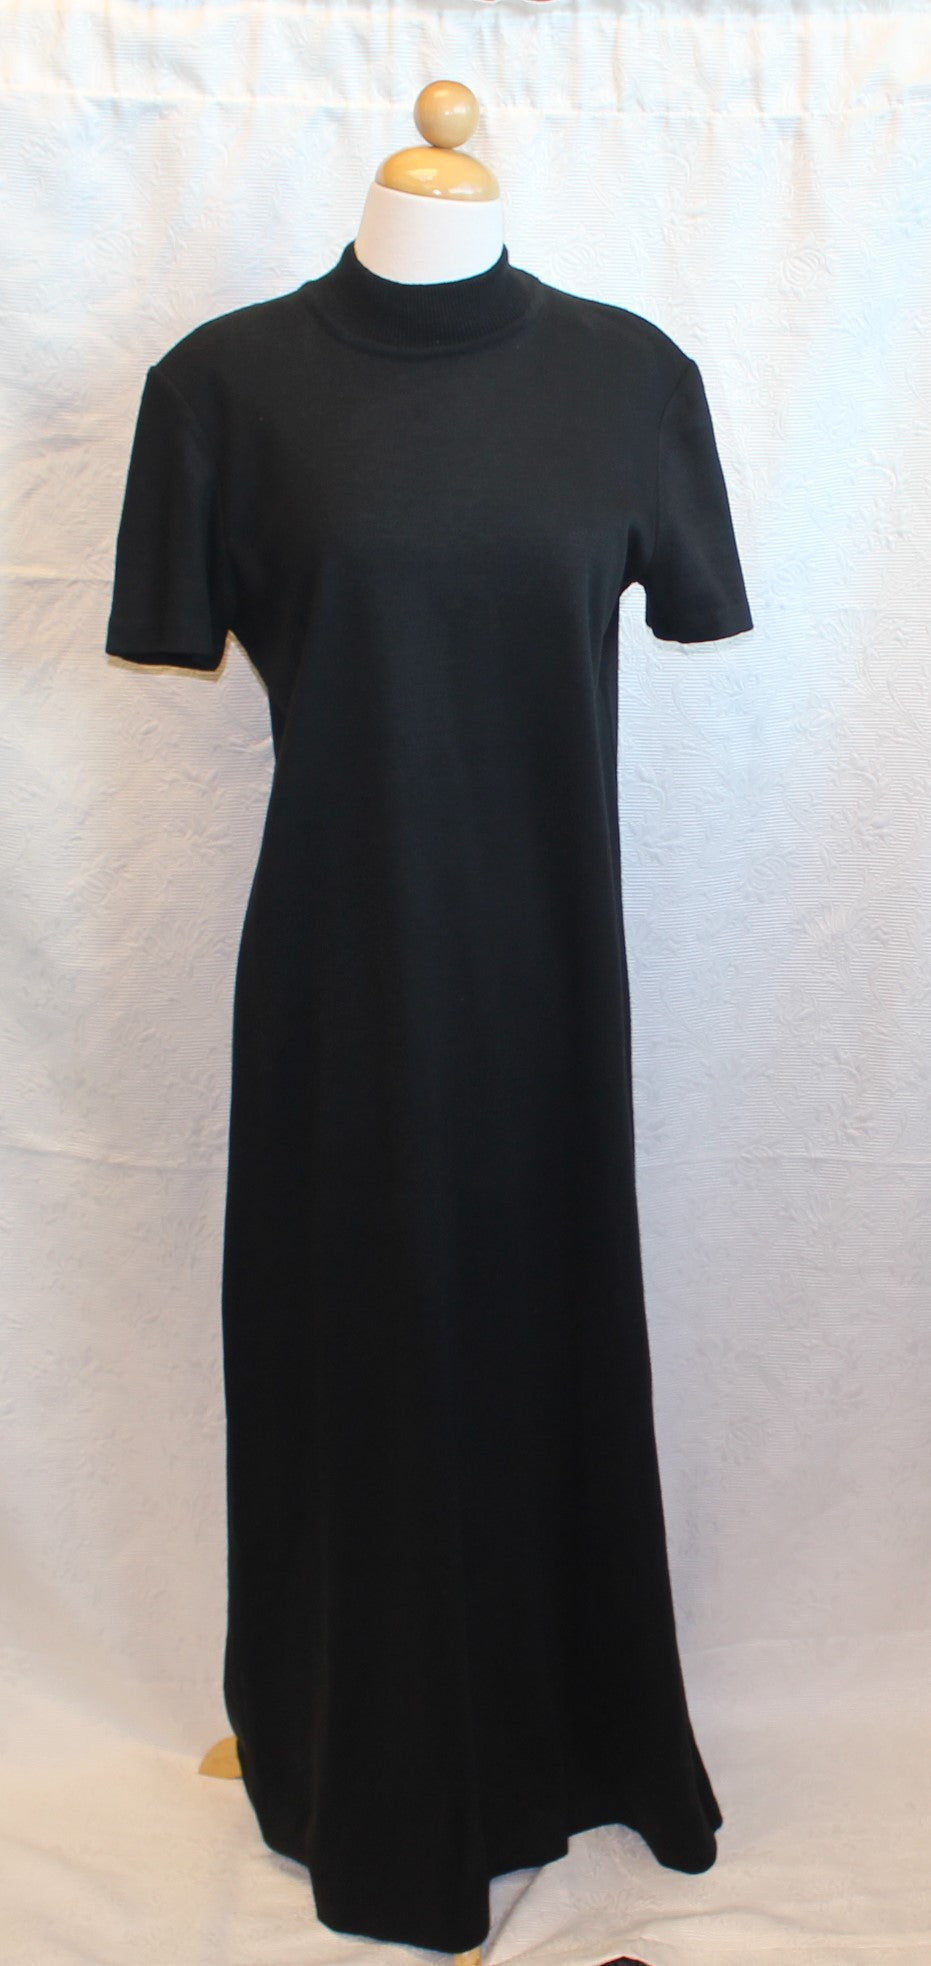 Women's Full Length Dress                   M                                                  3/3B